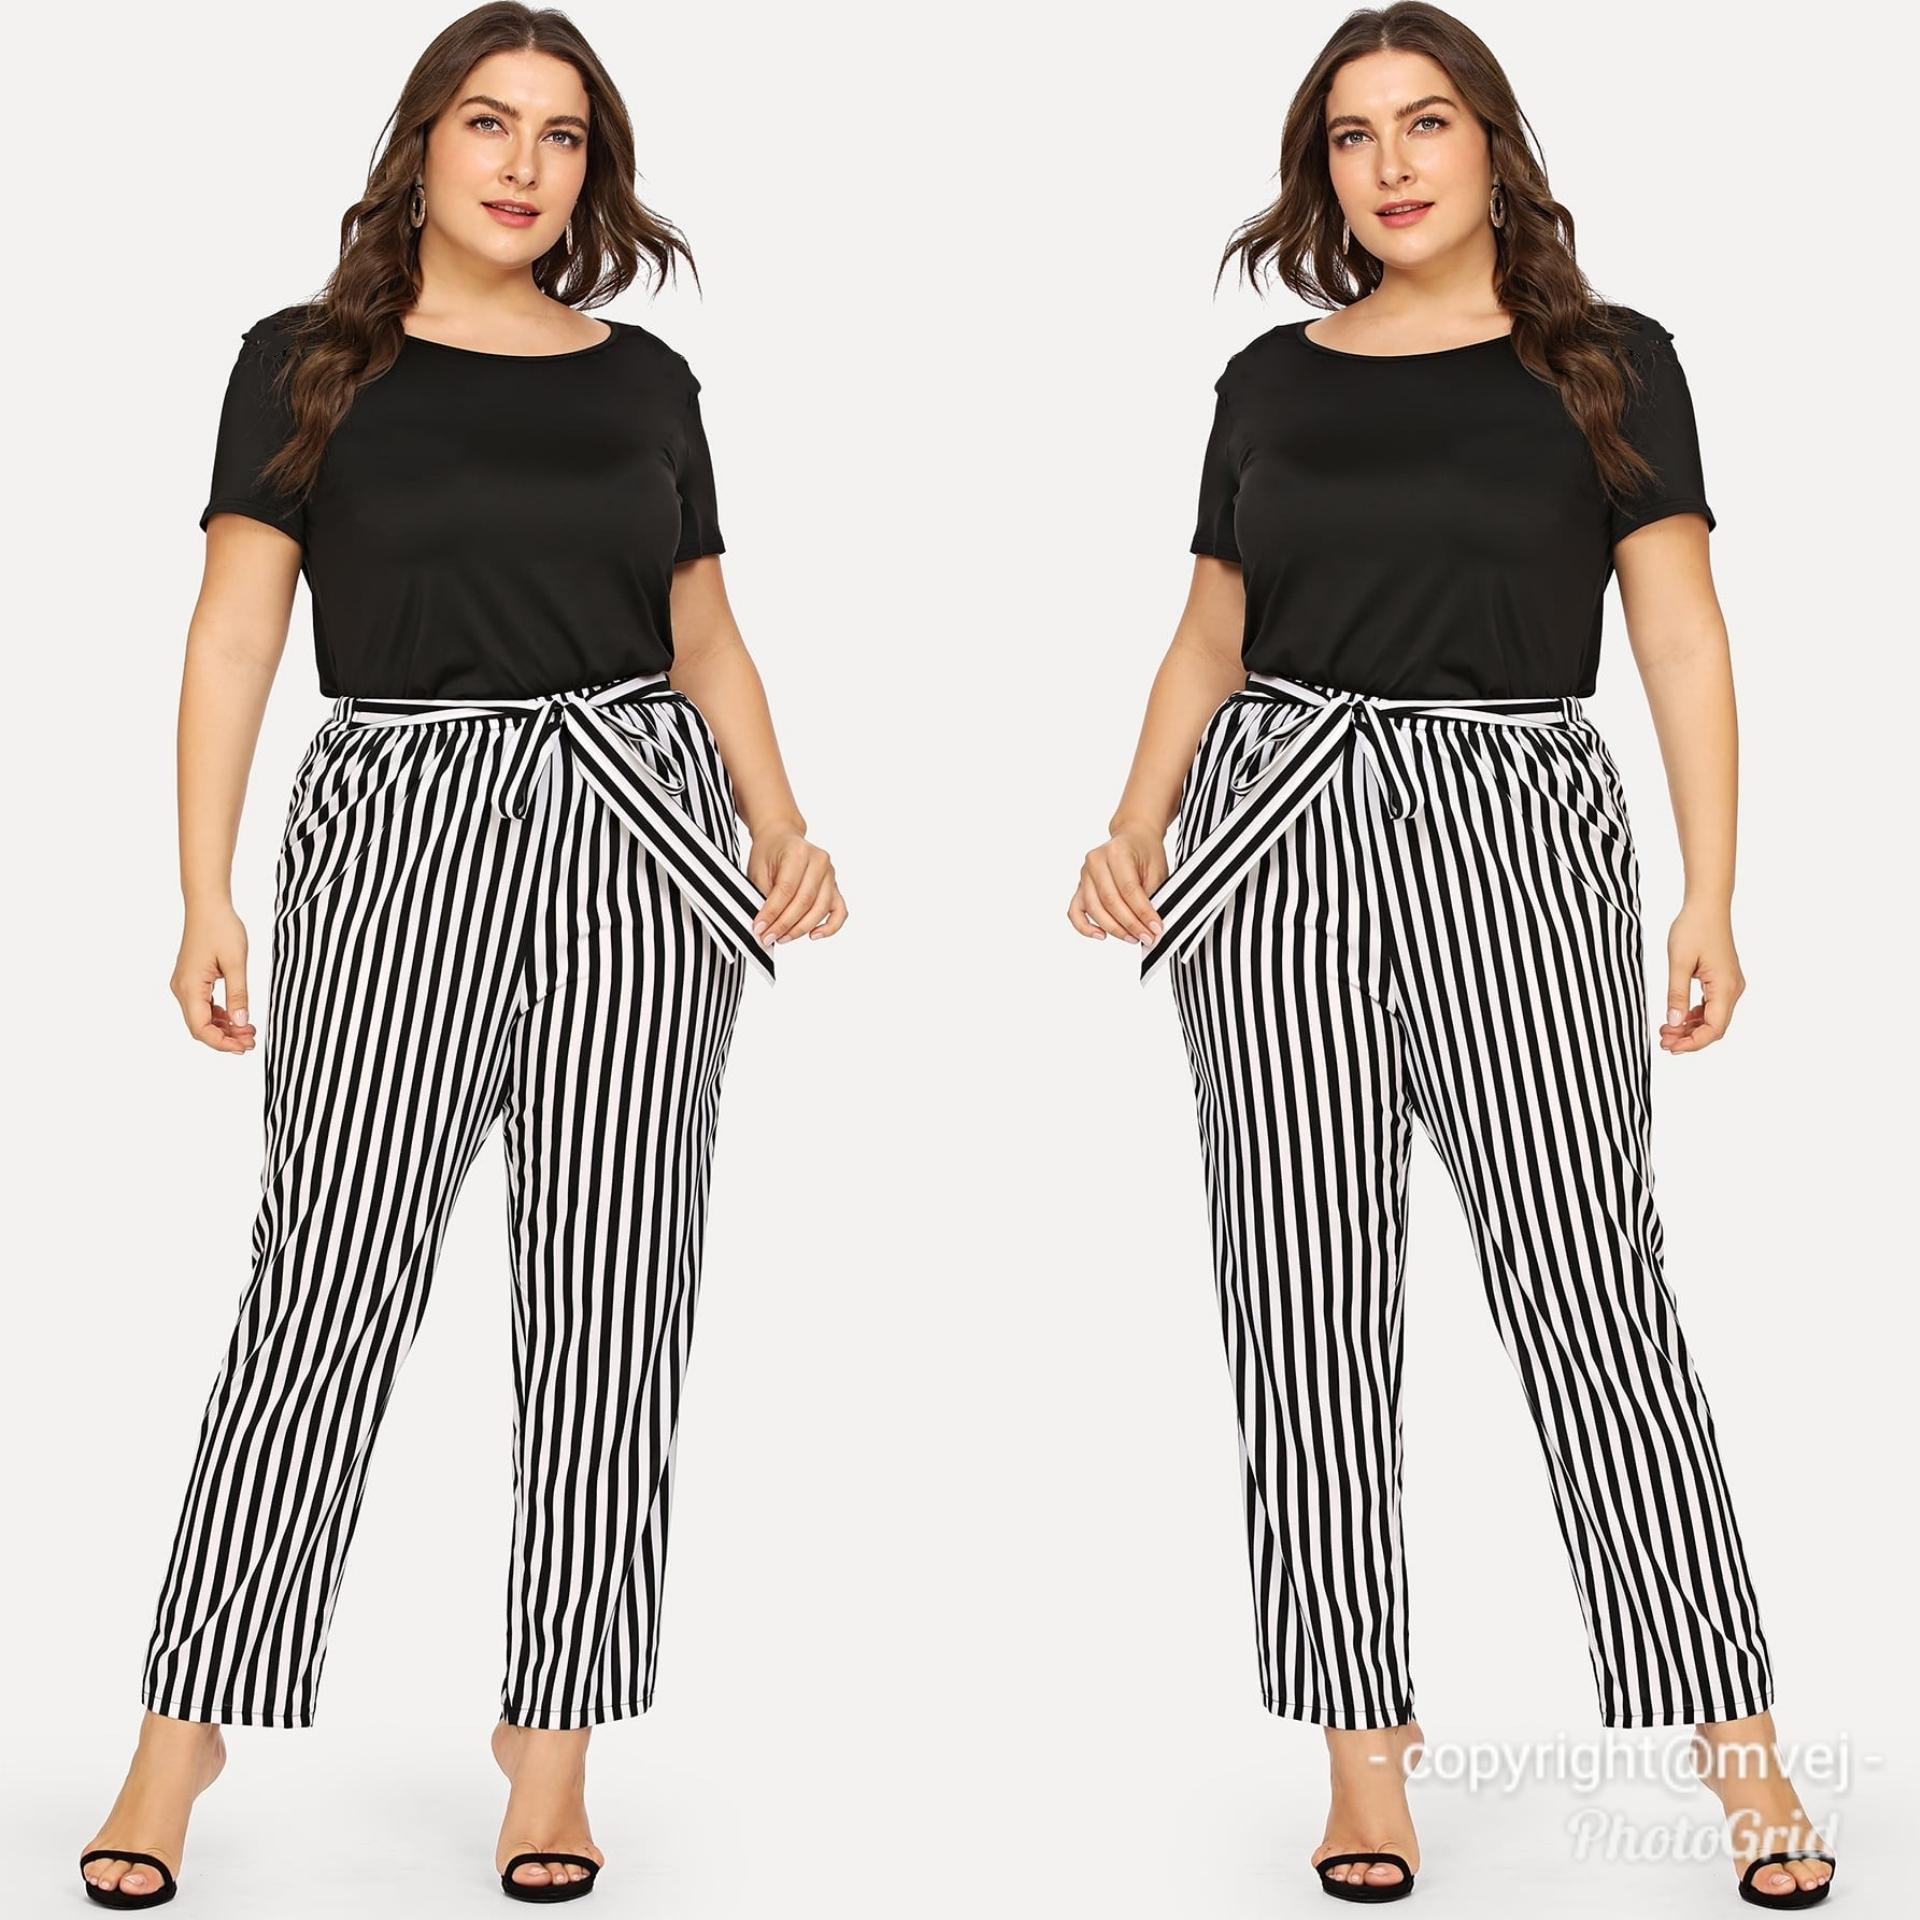 1498073f9ef31 Plus Size Pants for Women for sale - Plus Size Bottoms online brands ...